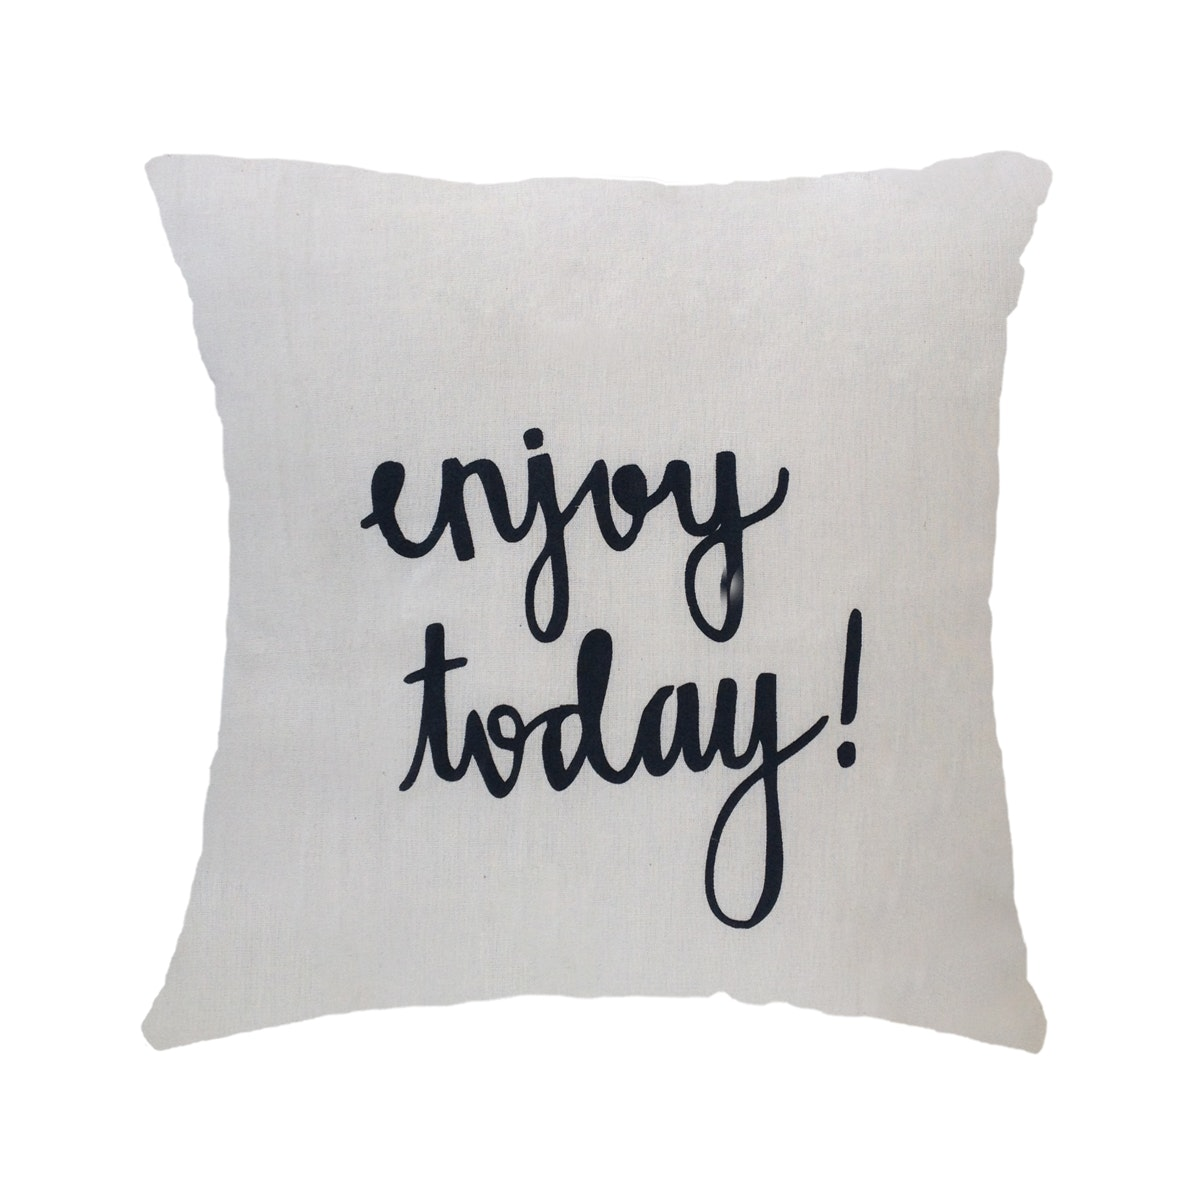 Stiletto In Style Cushion Cover Enjoy Today! 40 X 40Cm